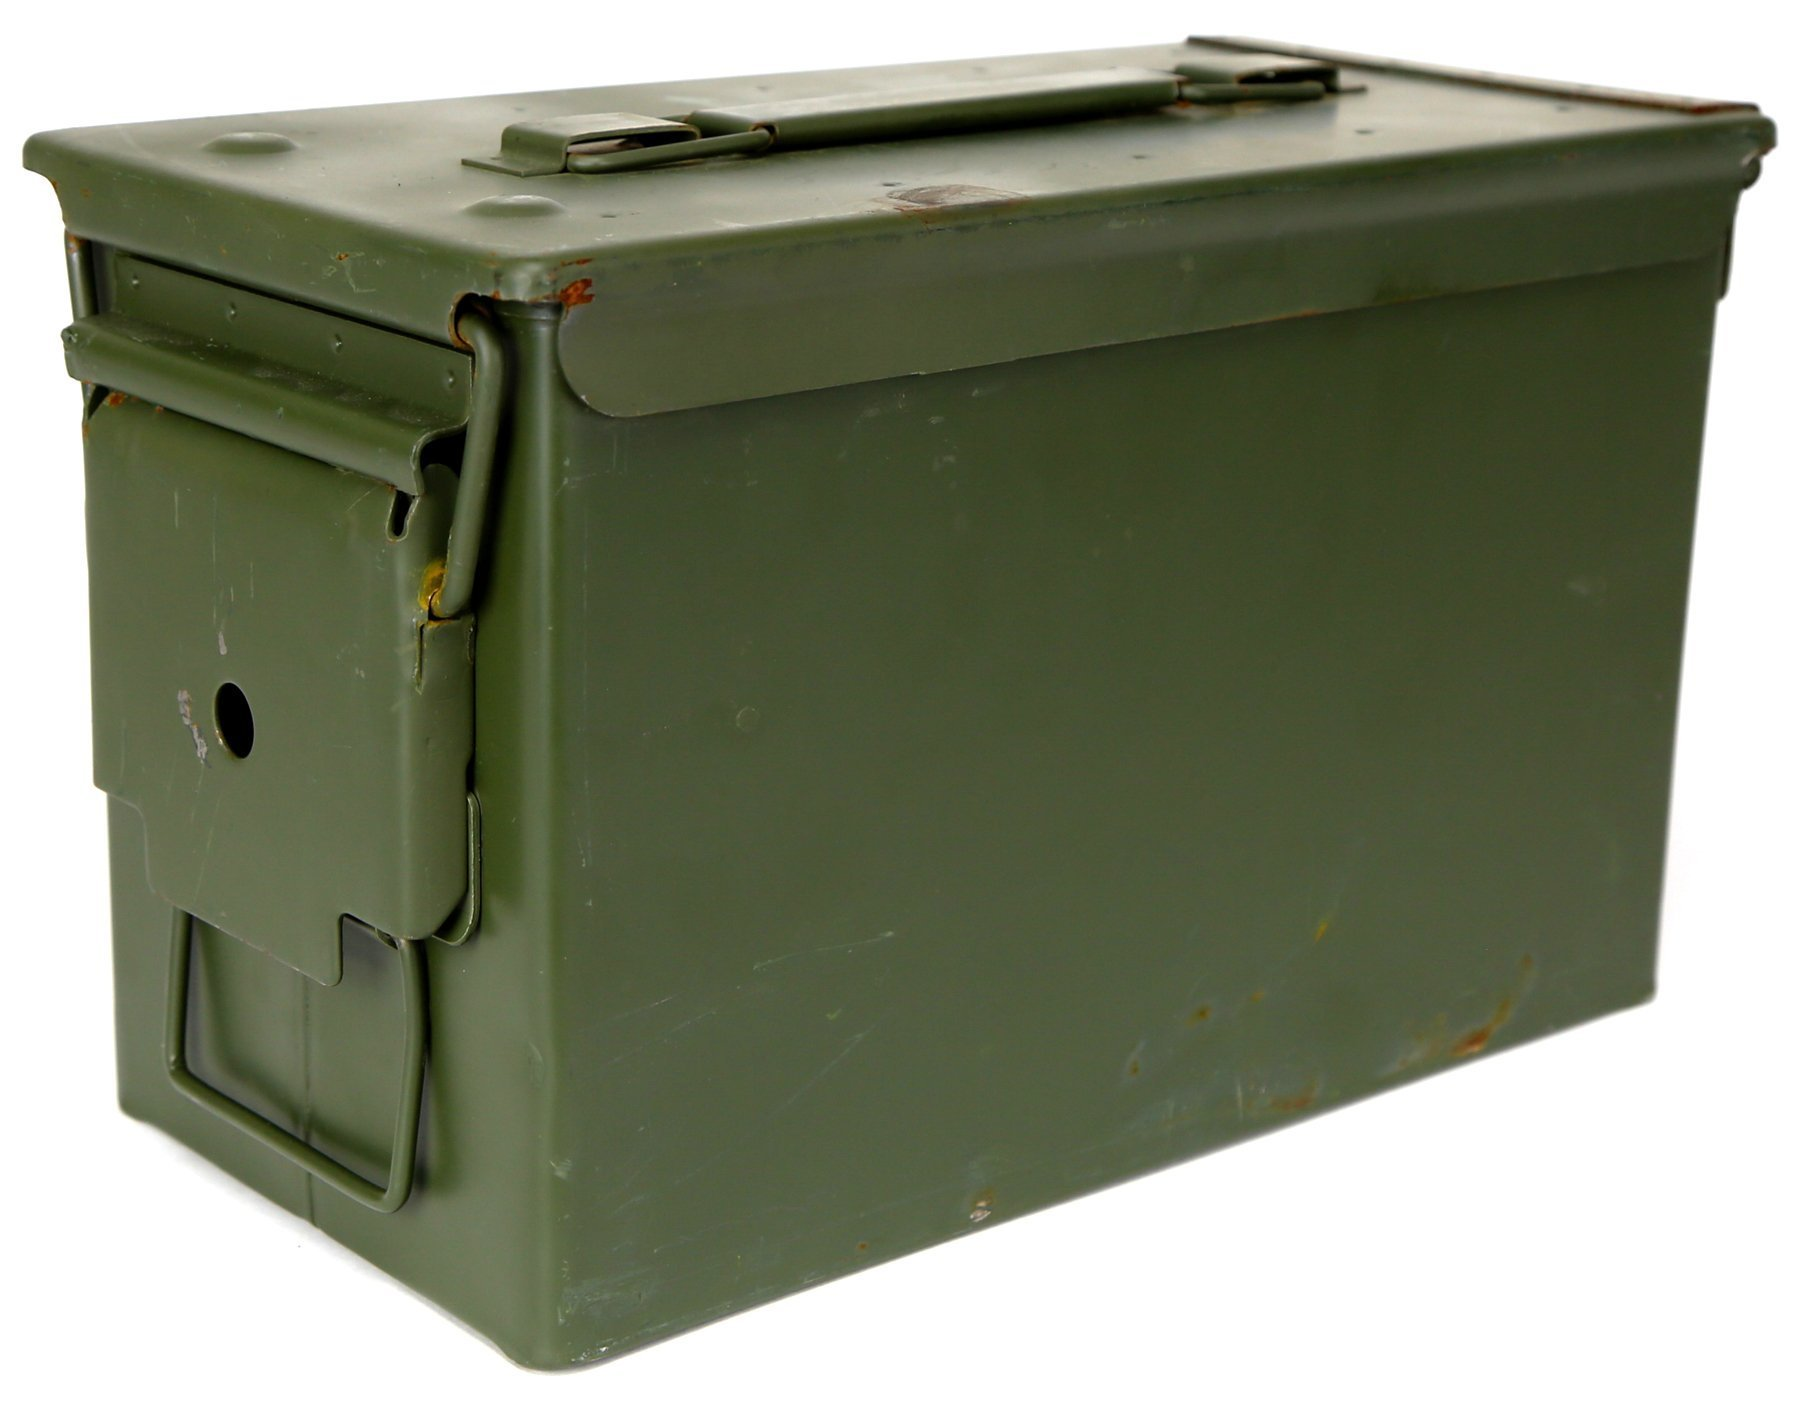 Military Outdoor Clothing Previously Issued U.S. G.I. M2A1 Metal 50-Caliber Ammo Box